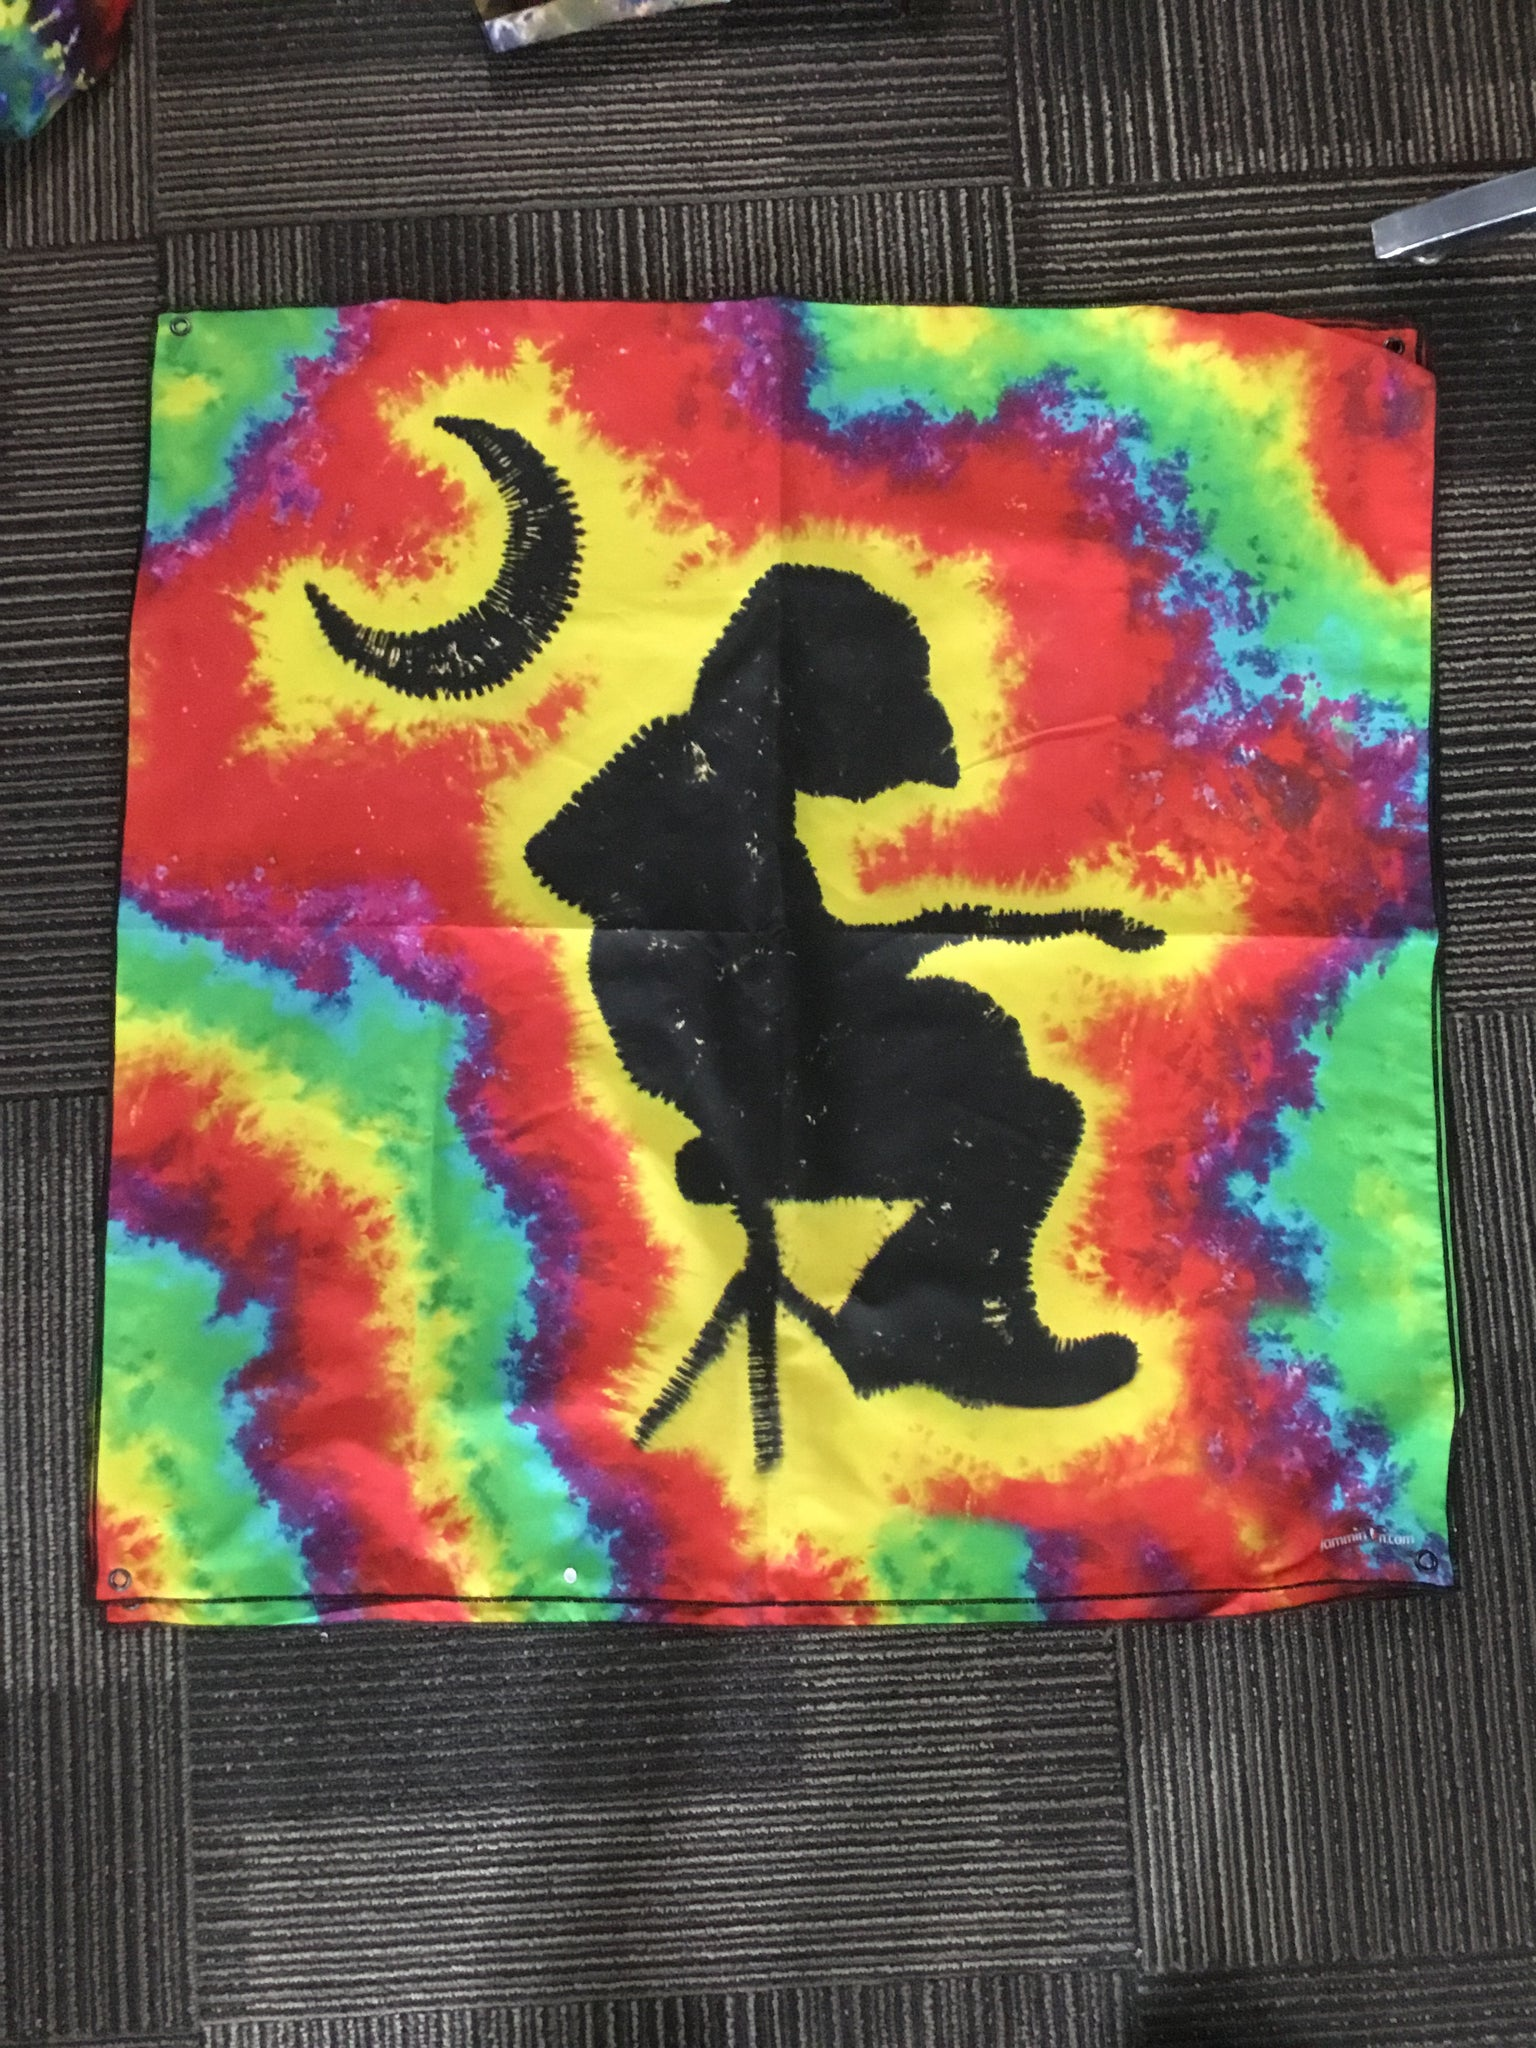 WIDESPREAD PANIC, Jammin On Tapestries, Dye-Sub